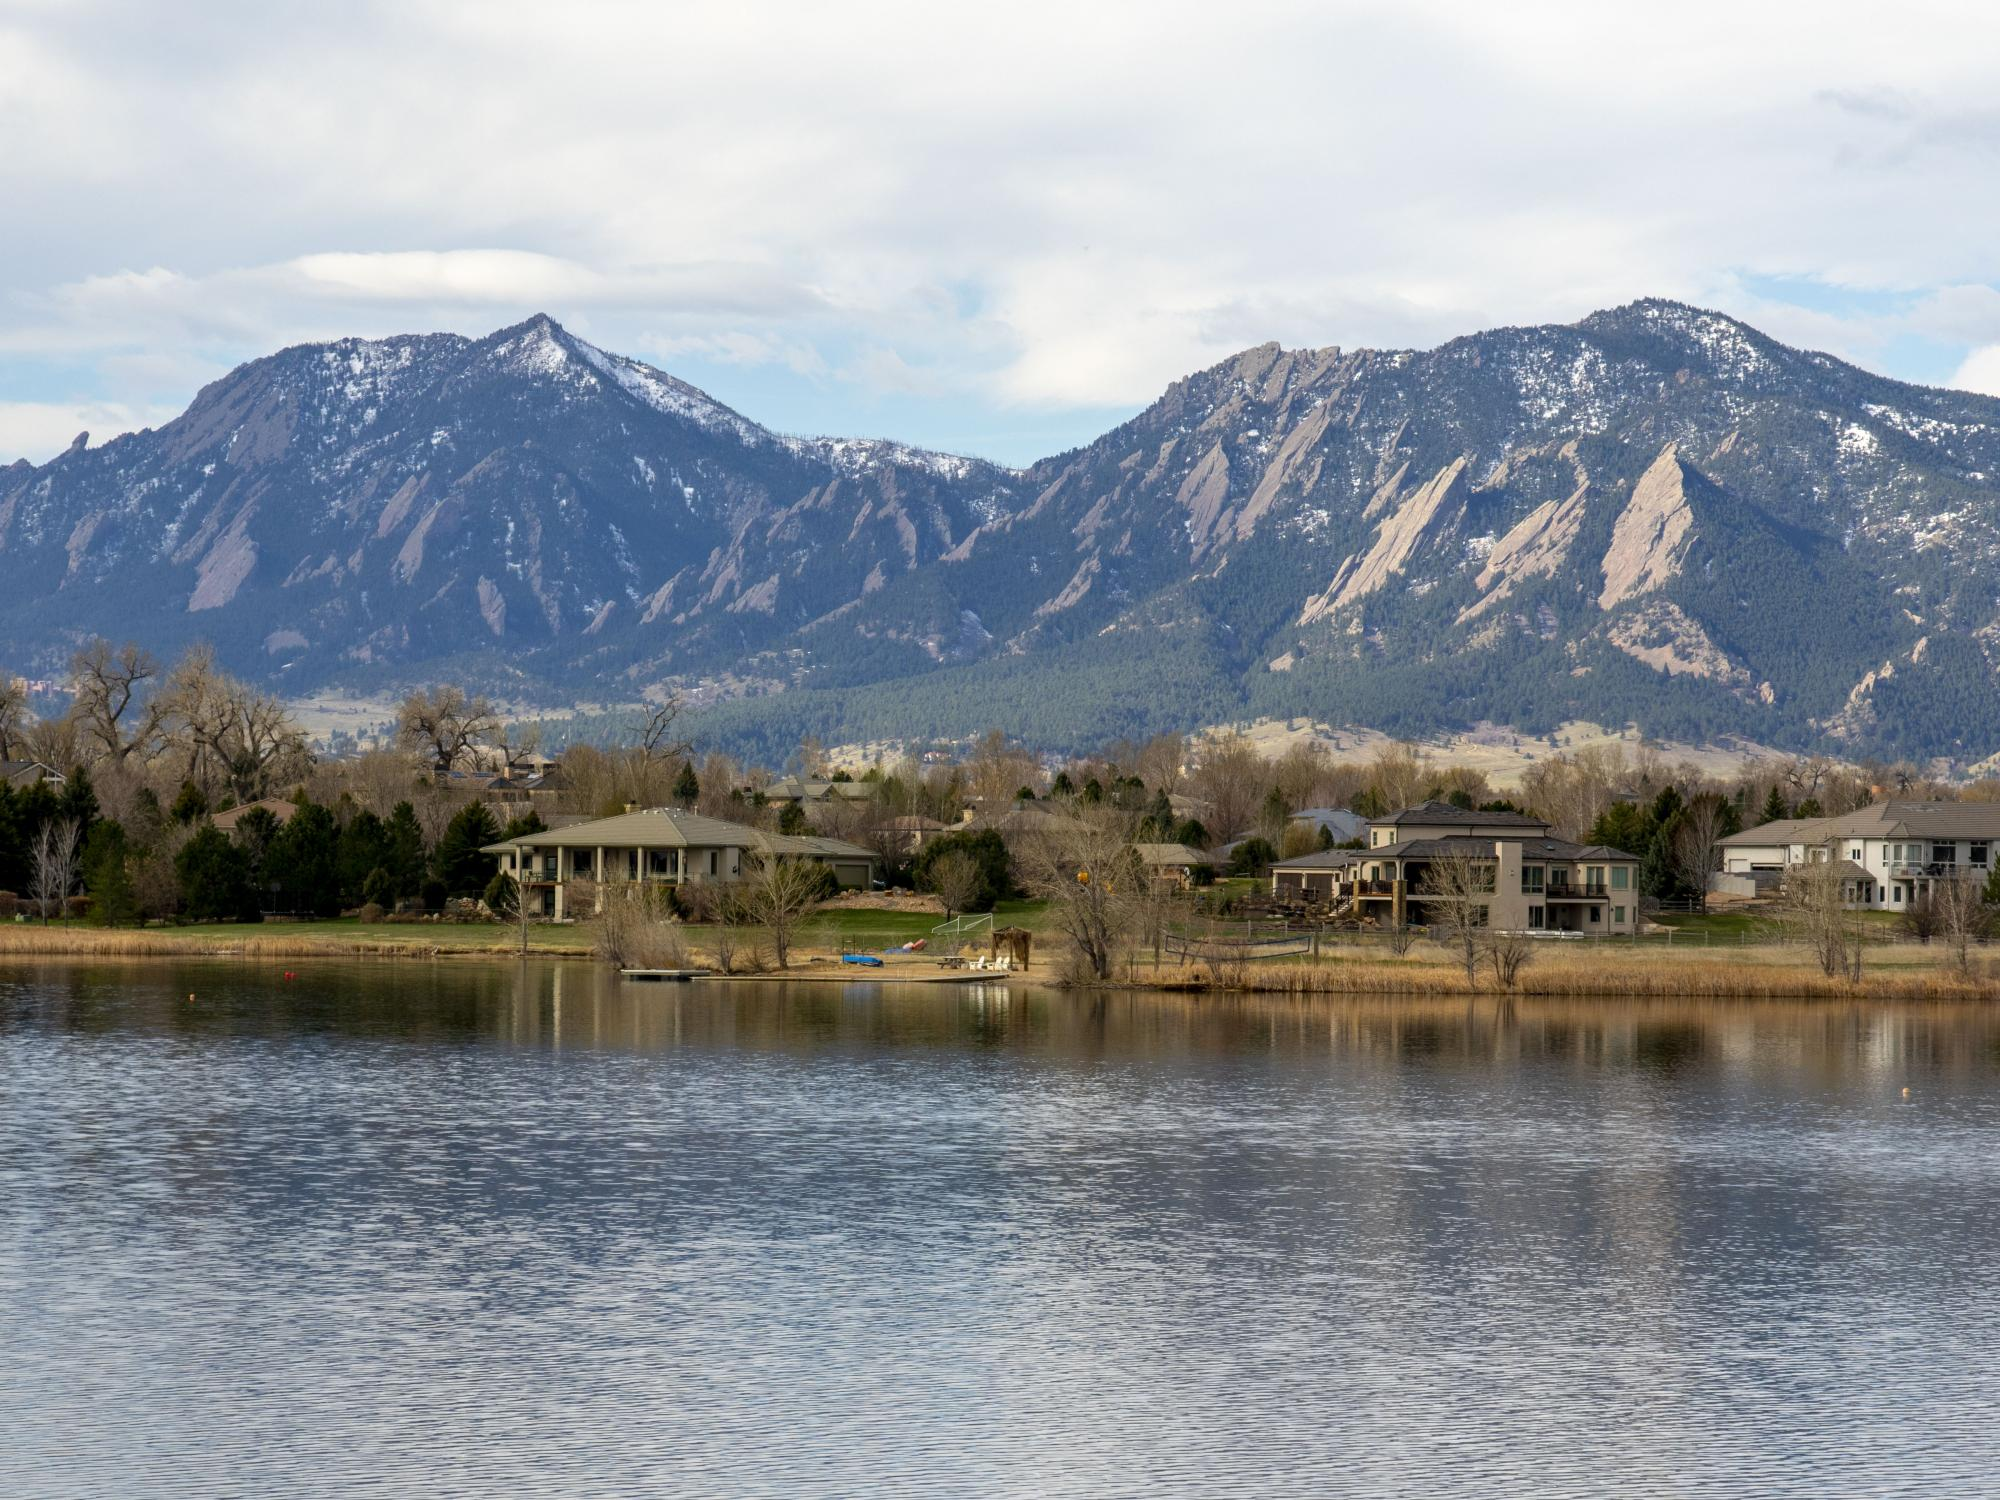 The Flatirons as seen from Boulder Resevoir.